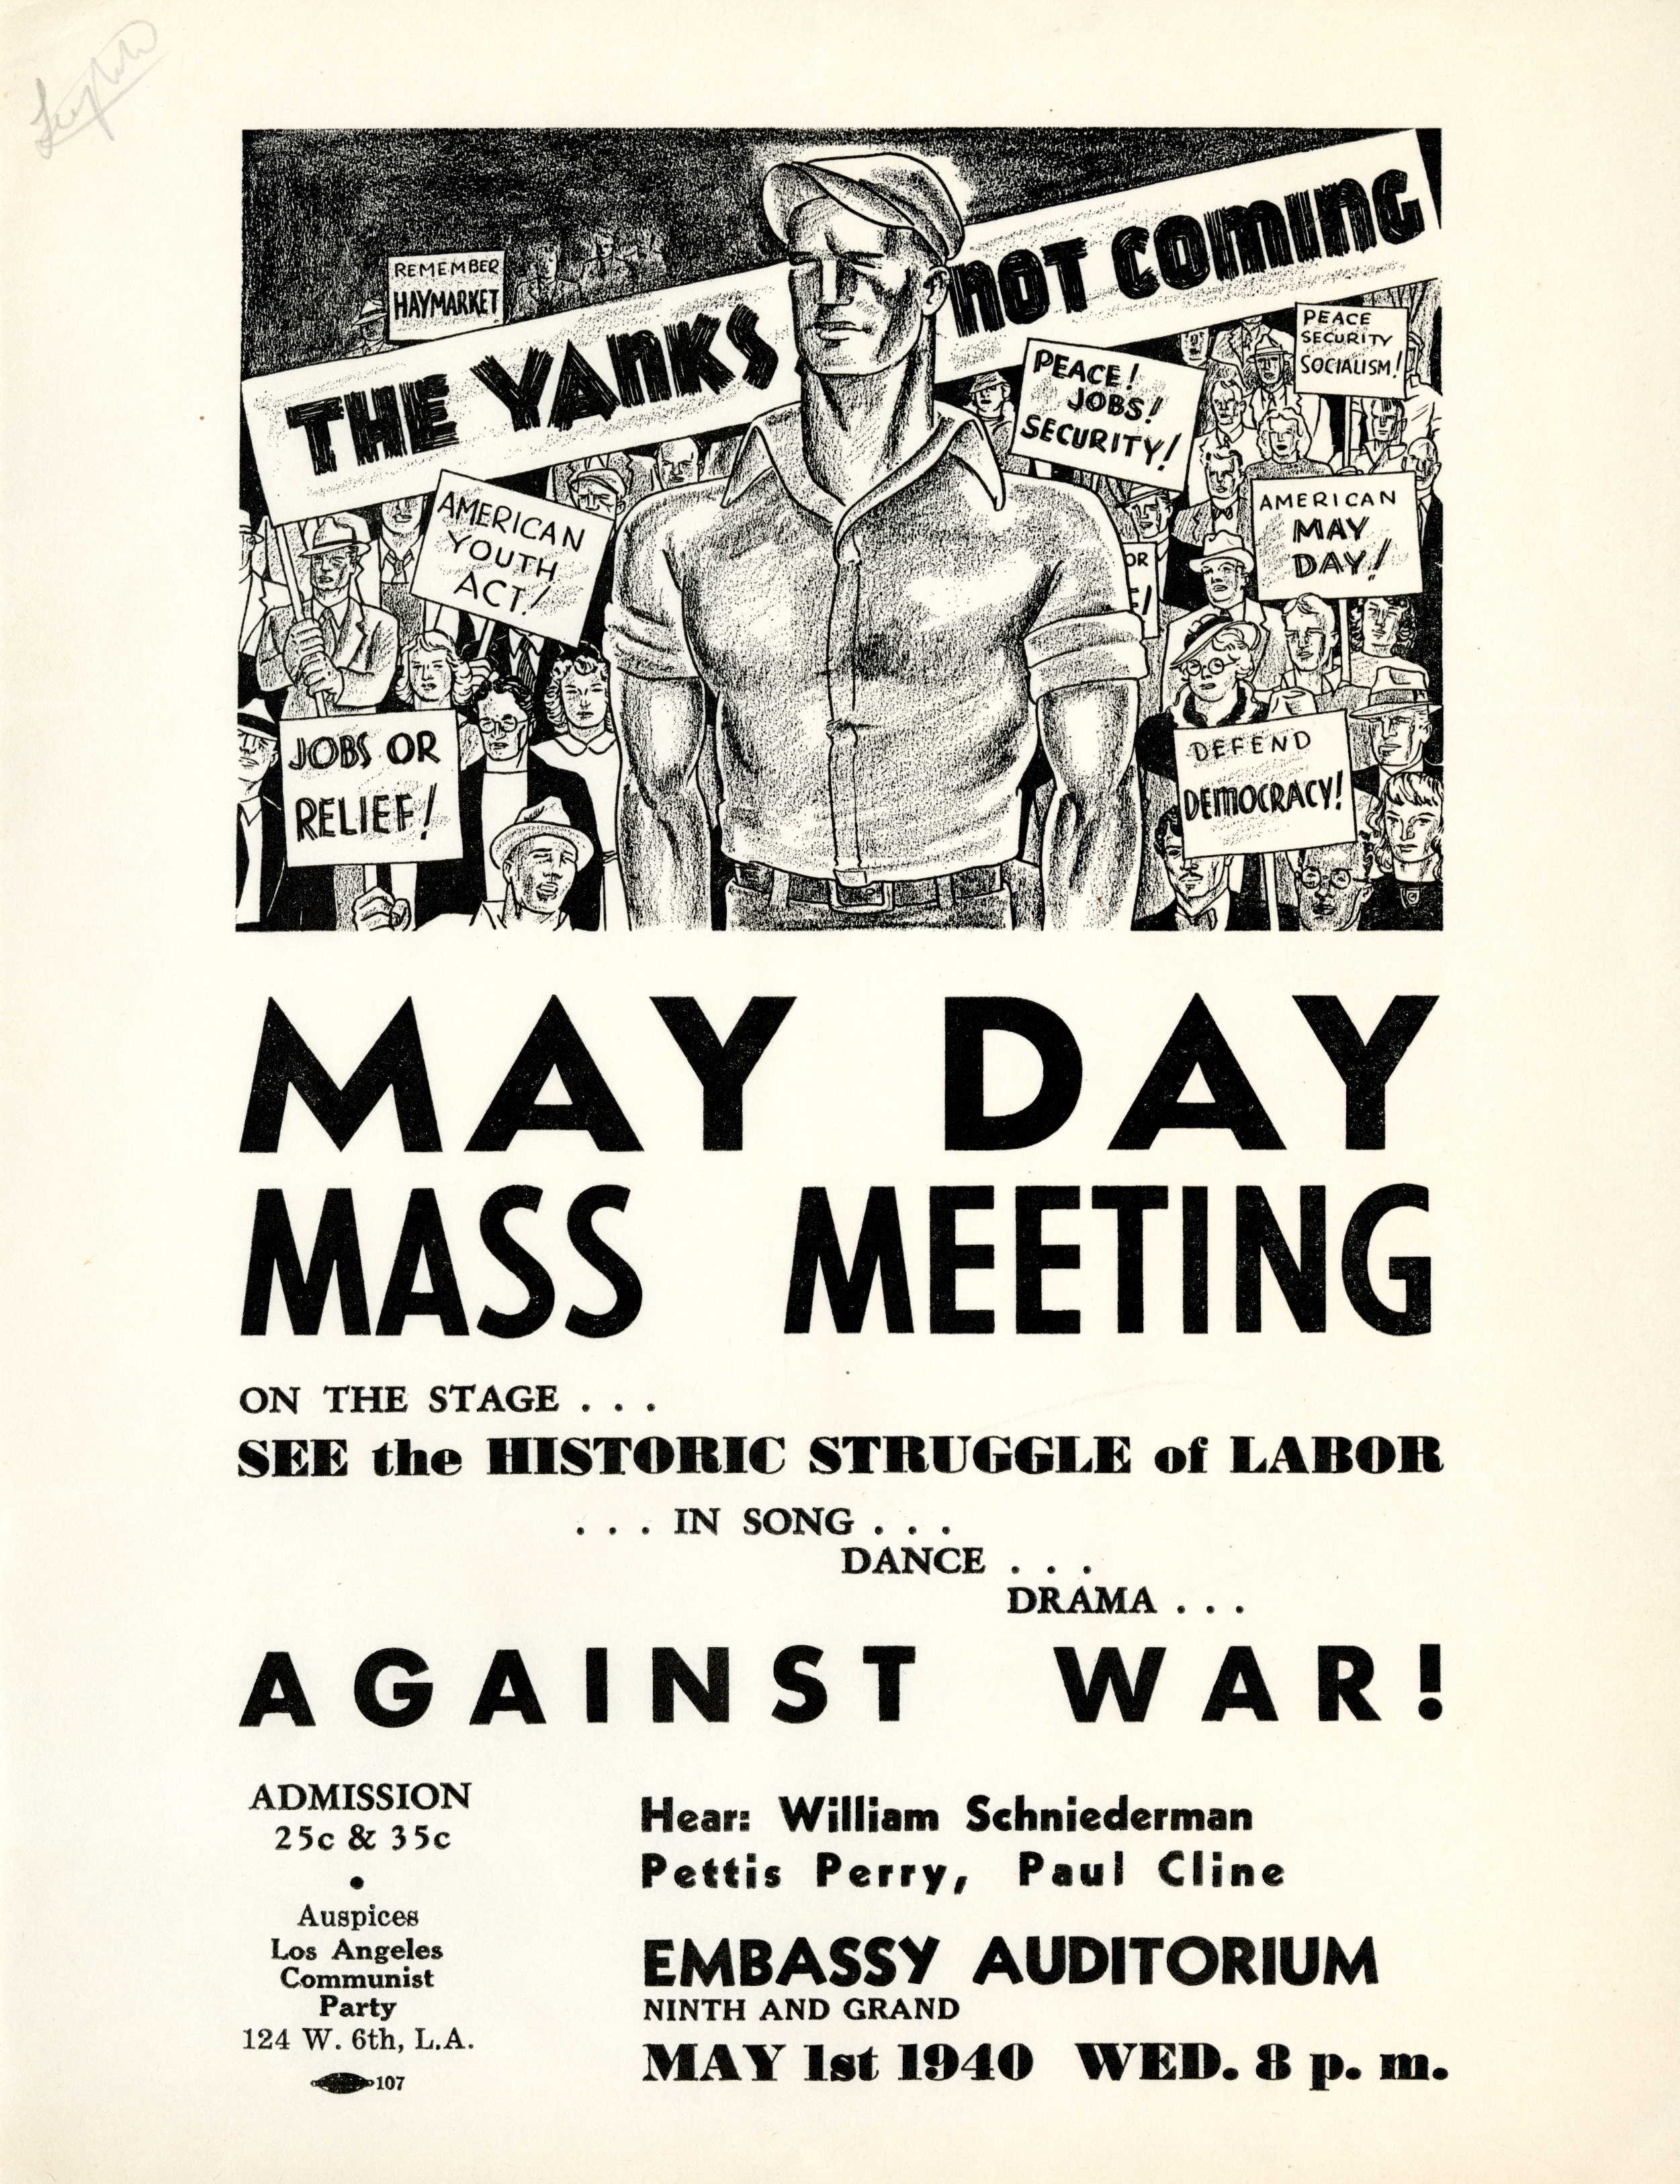 image of May Day Mass Meeting flyer